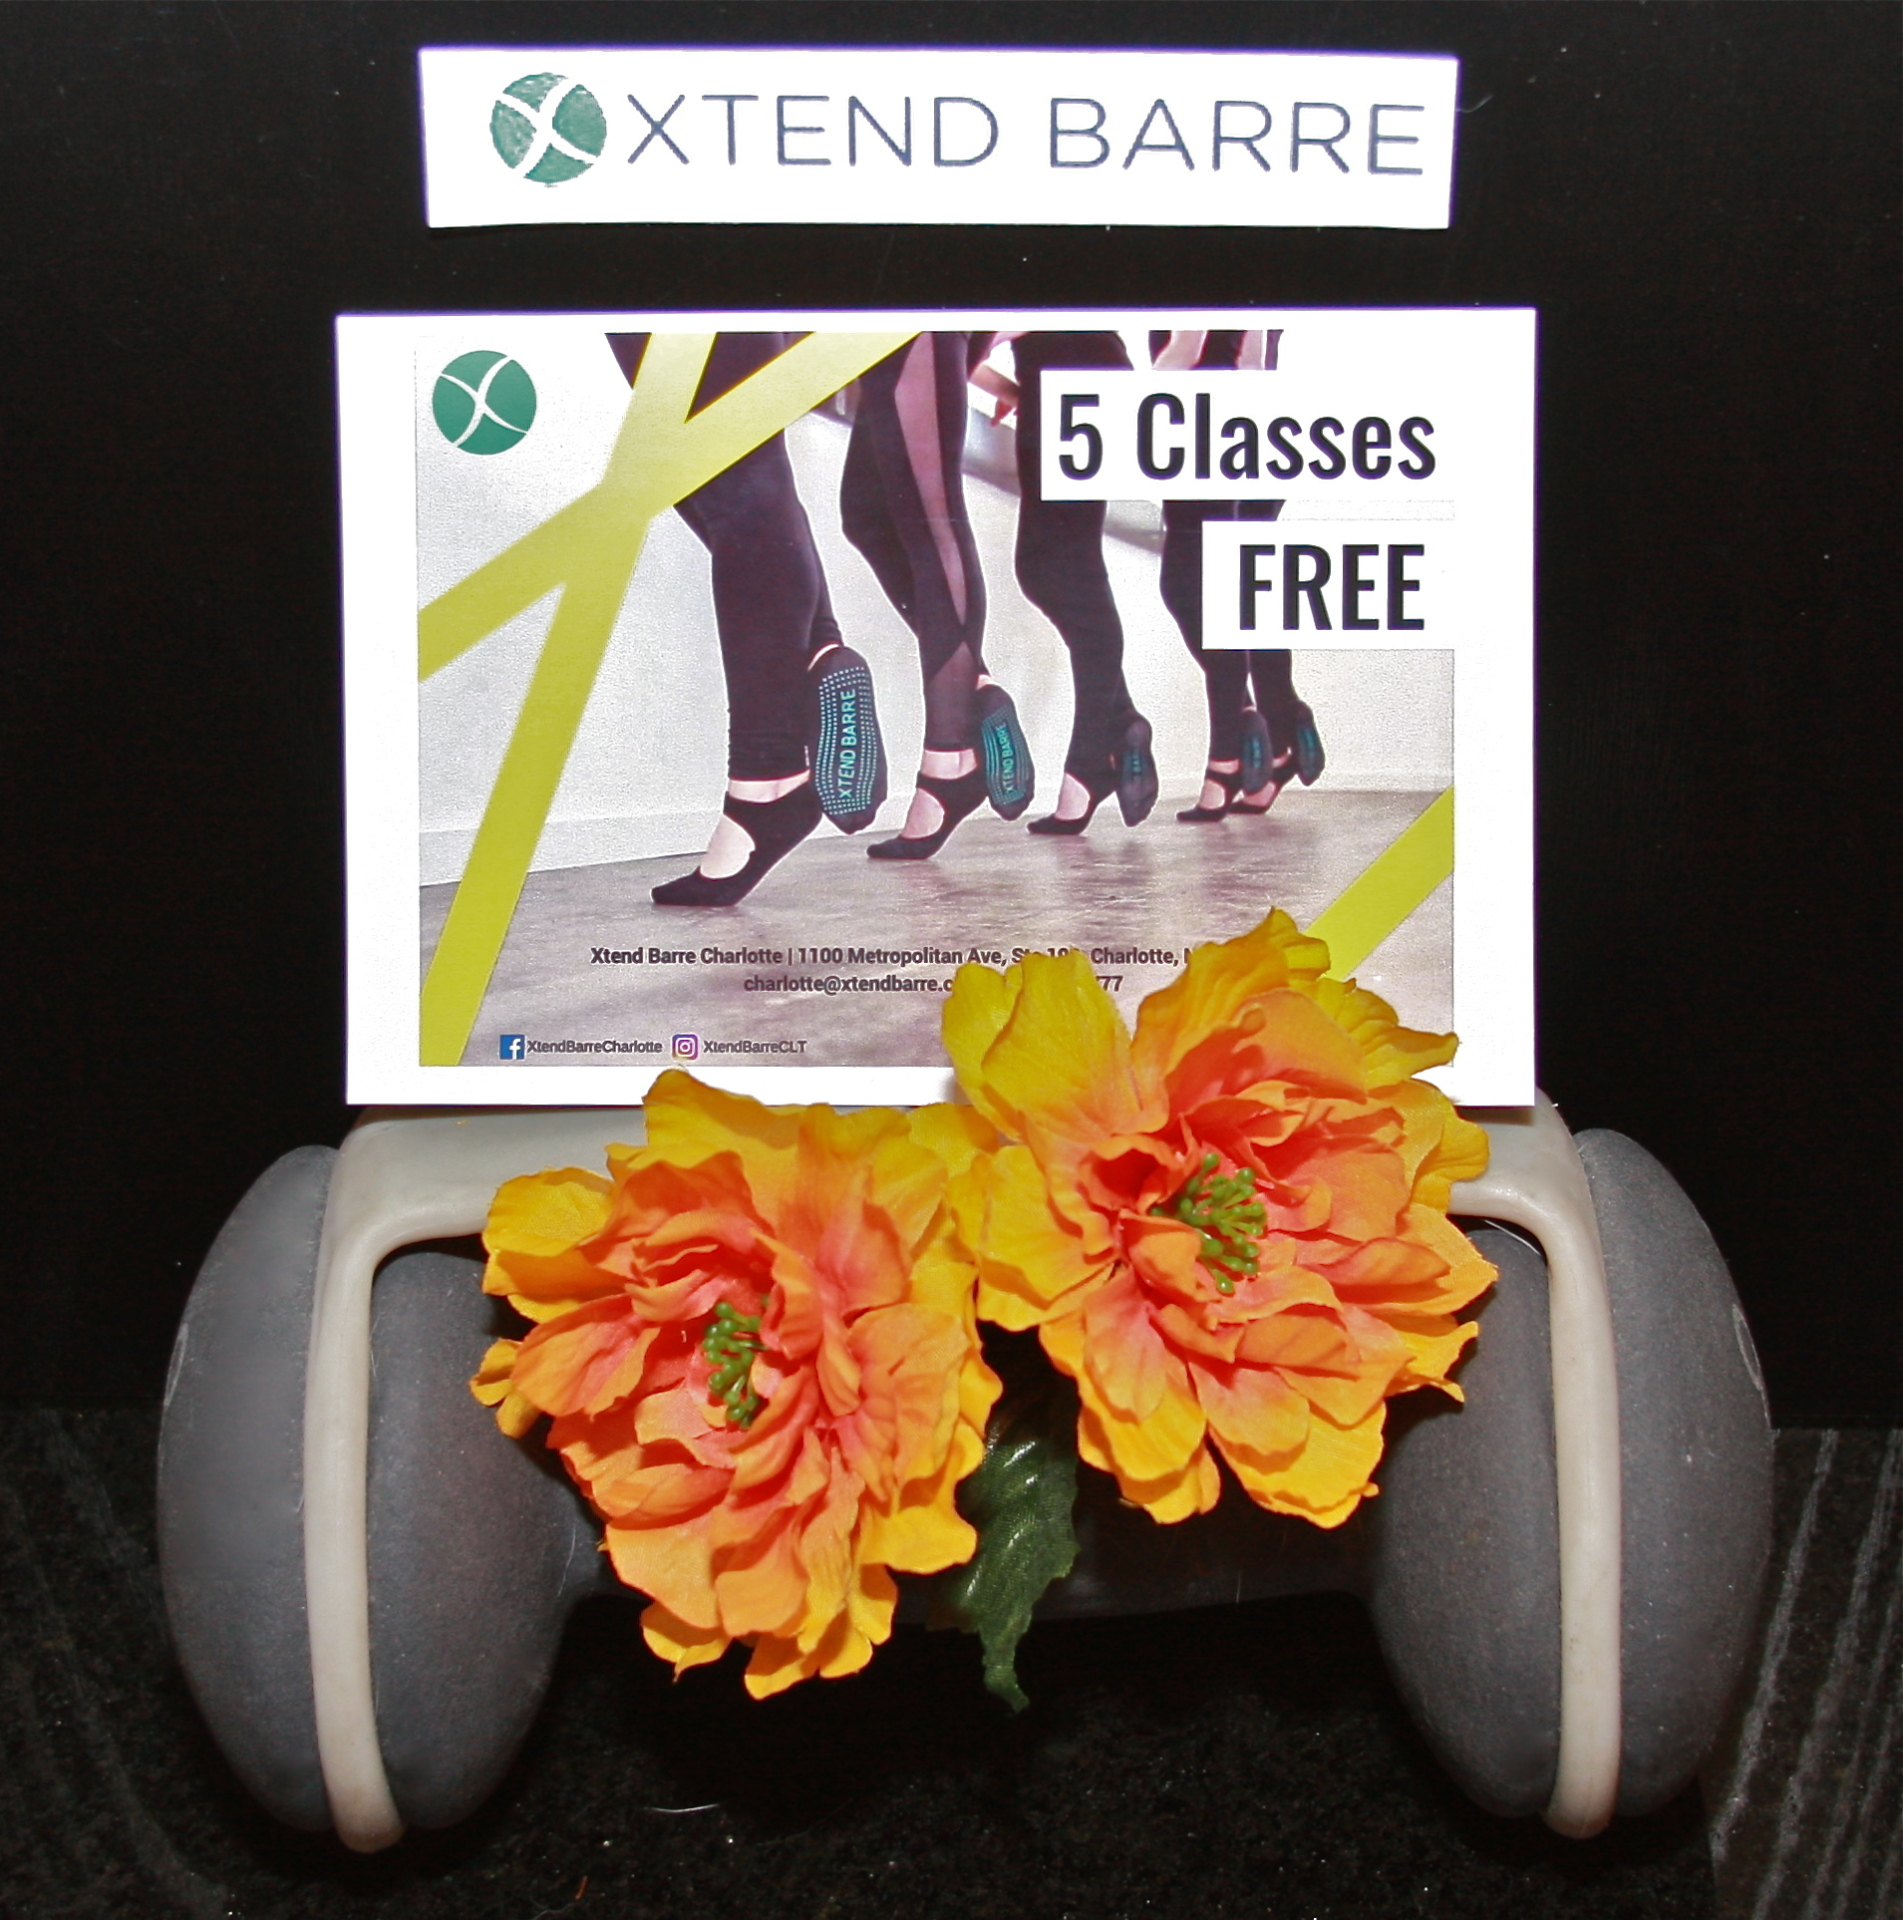 xtend barre metropolitan, charlotte, moving to charlotte, victoria schweizer, southern luxurie, gym, workout, nutrition, feeling good, healthy